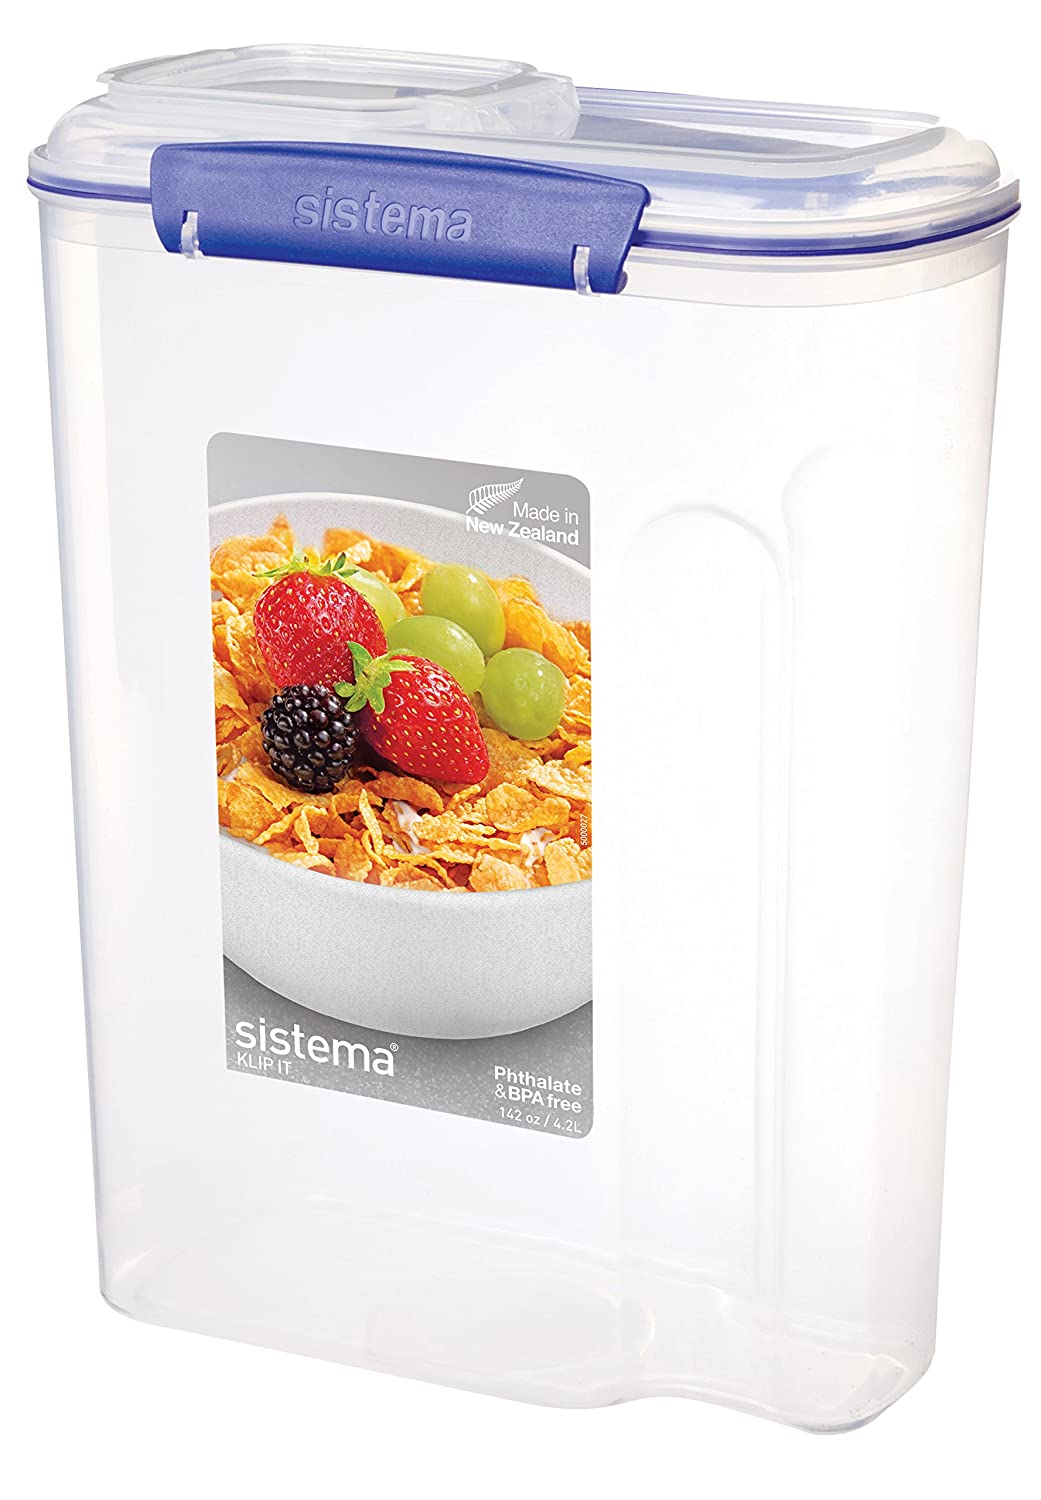 gallons plastic bins for your containers walmart tub innovative target quarts in solution sterilite amazon distinctive costco storage tubs home and orange sterilit to